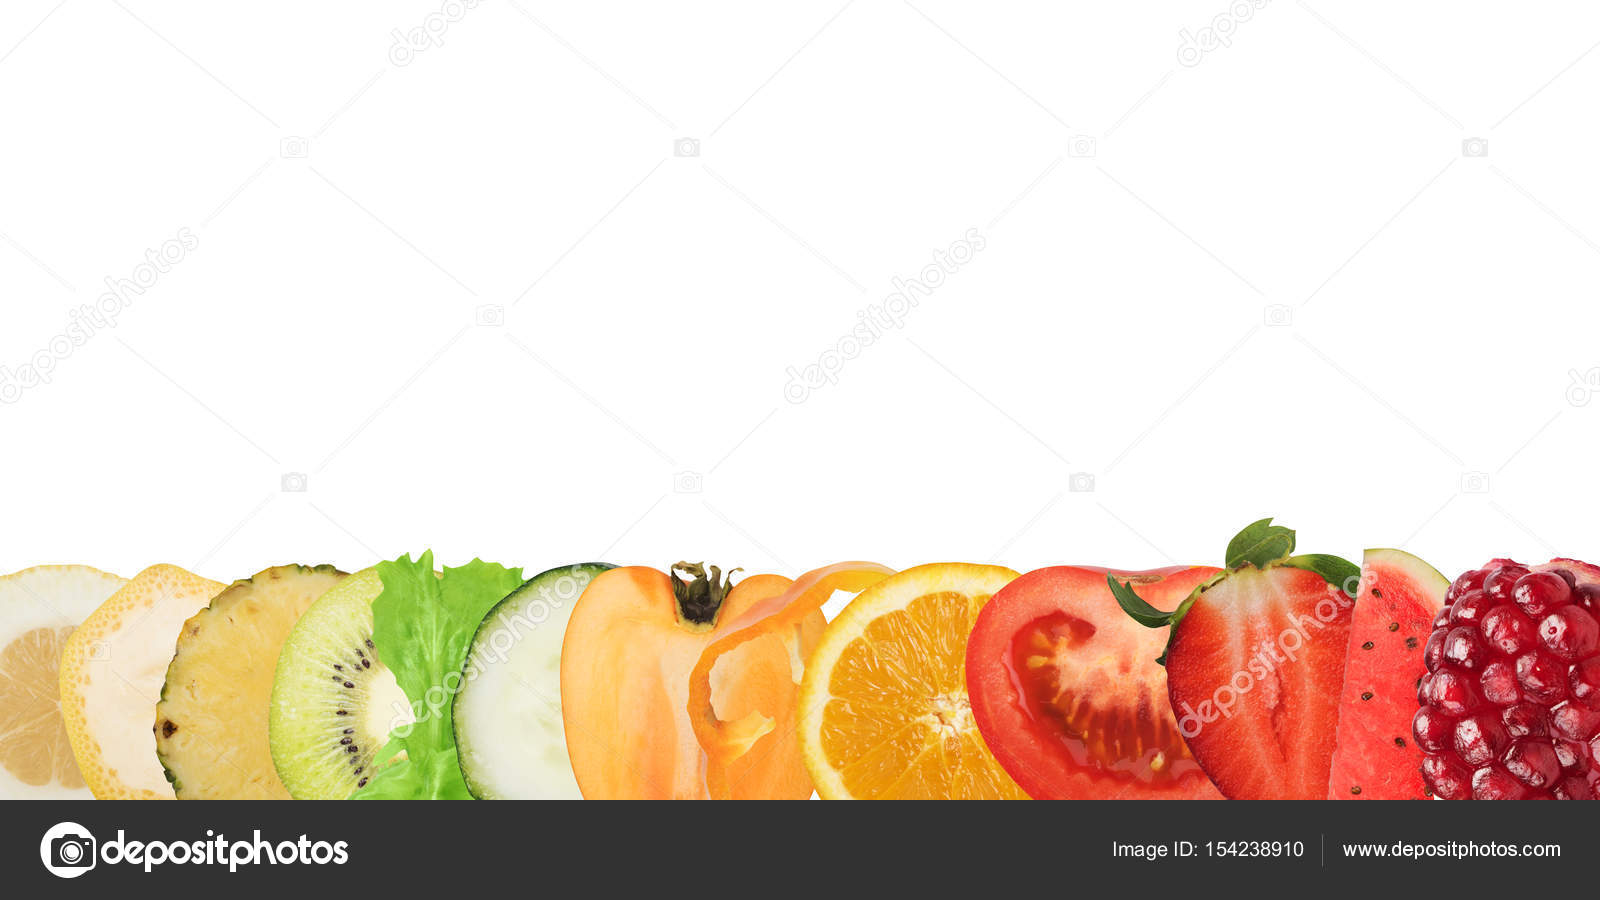 Banner Of Fruits And Vegetables Stock Photo C Alphaspirit 154238910